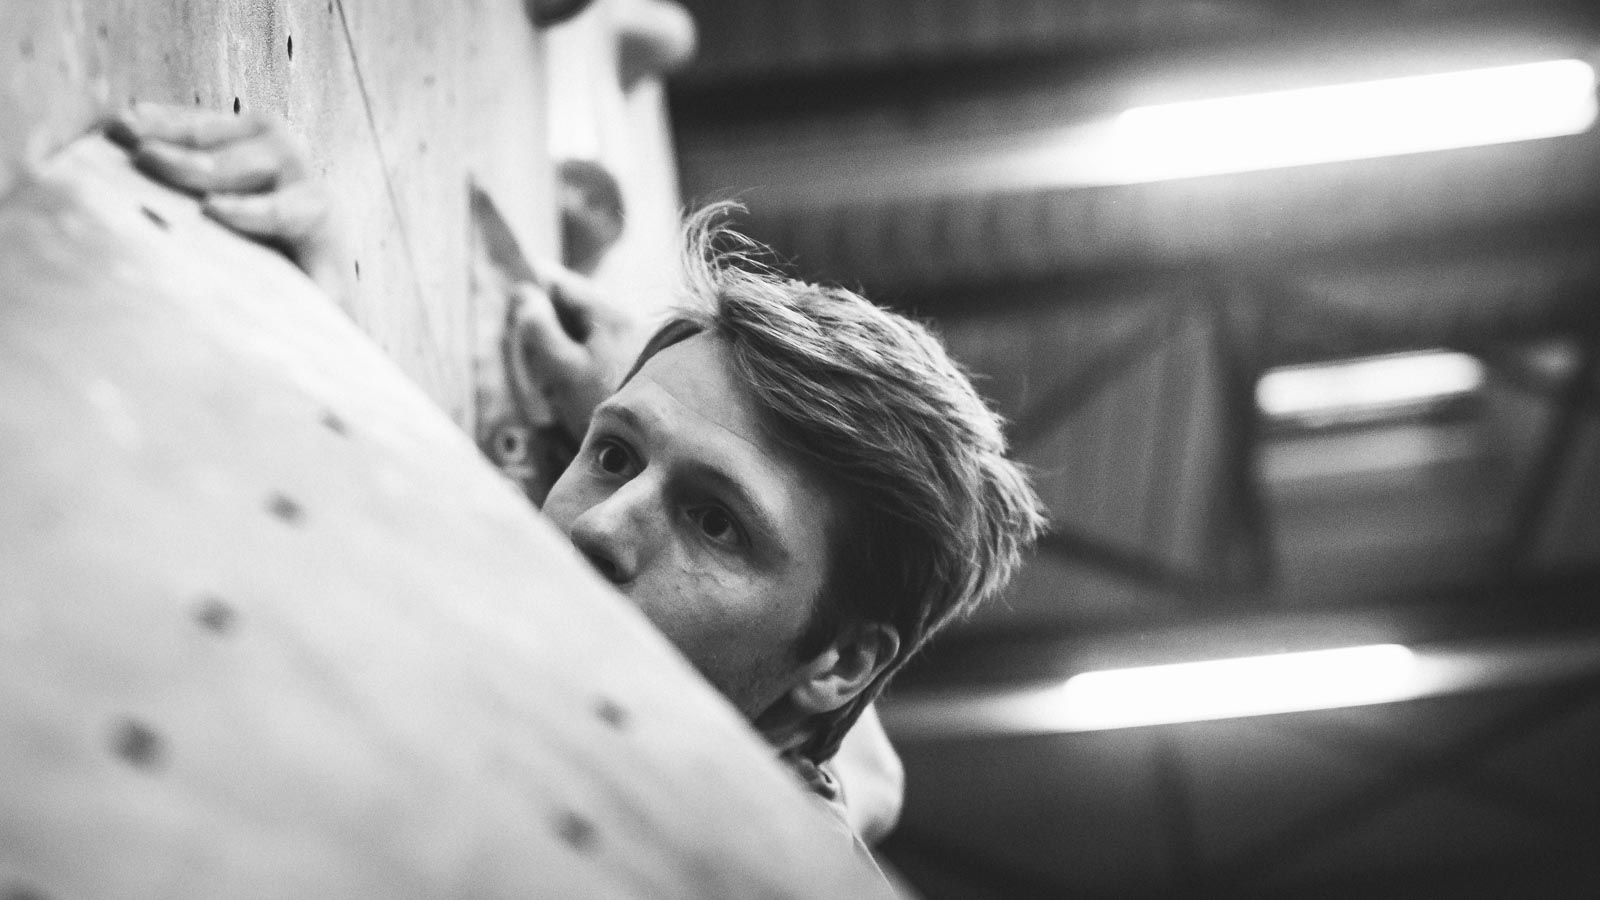 Focus on a climber's face while climbing in a bouldergym